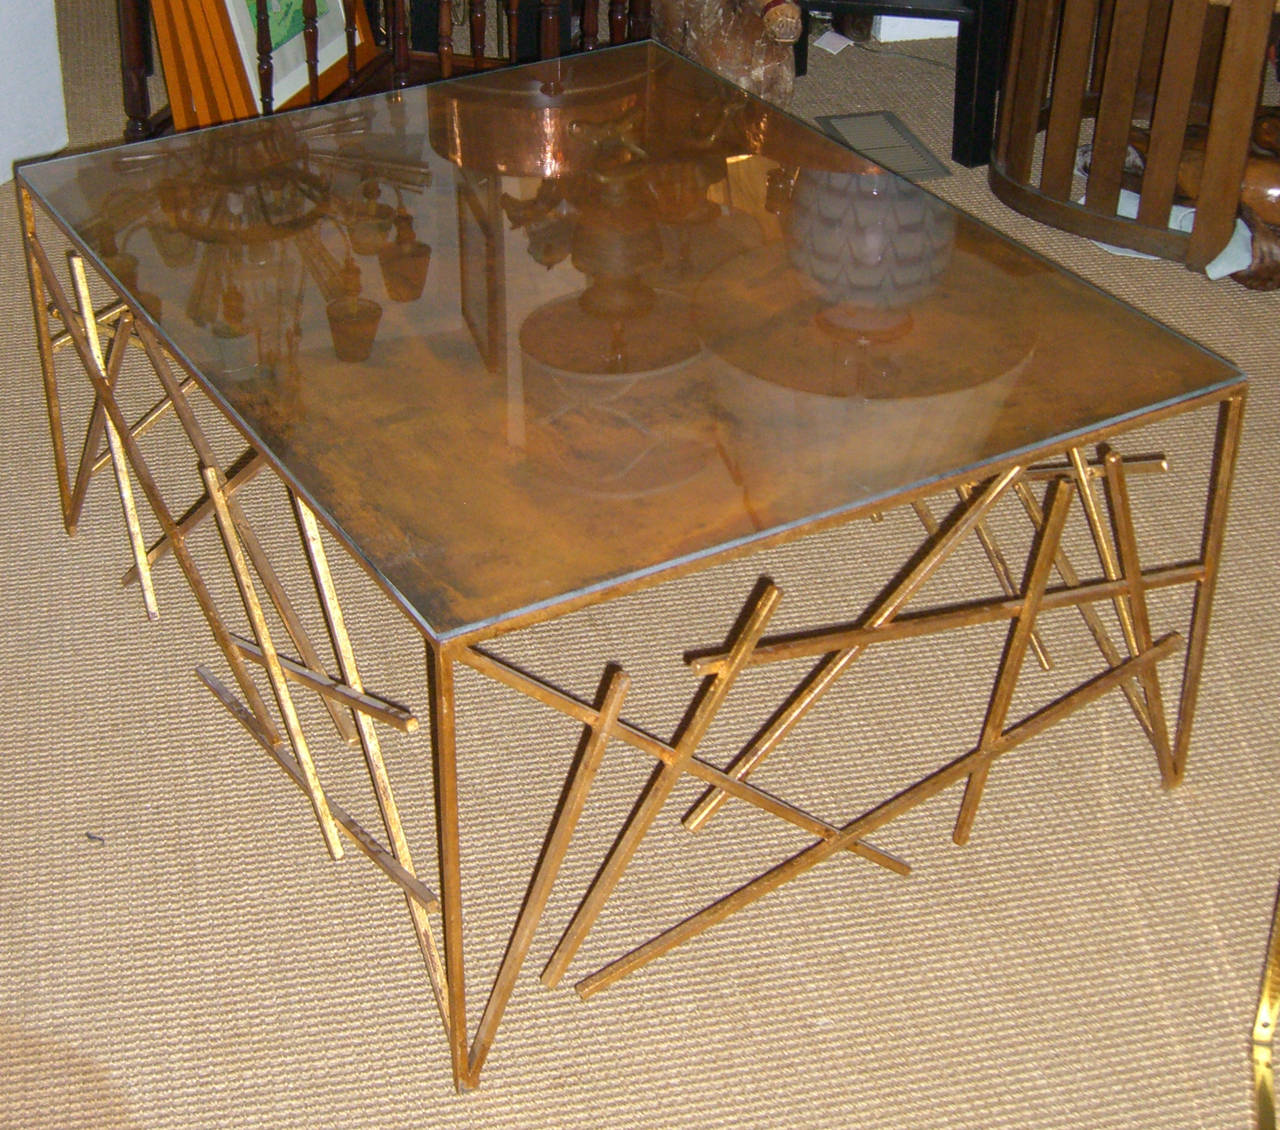 Custom Metal Criss Cross Design Cocktail Table For Sale At 1stdibs